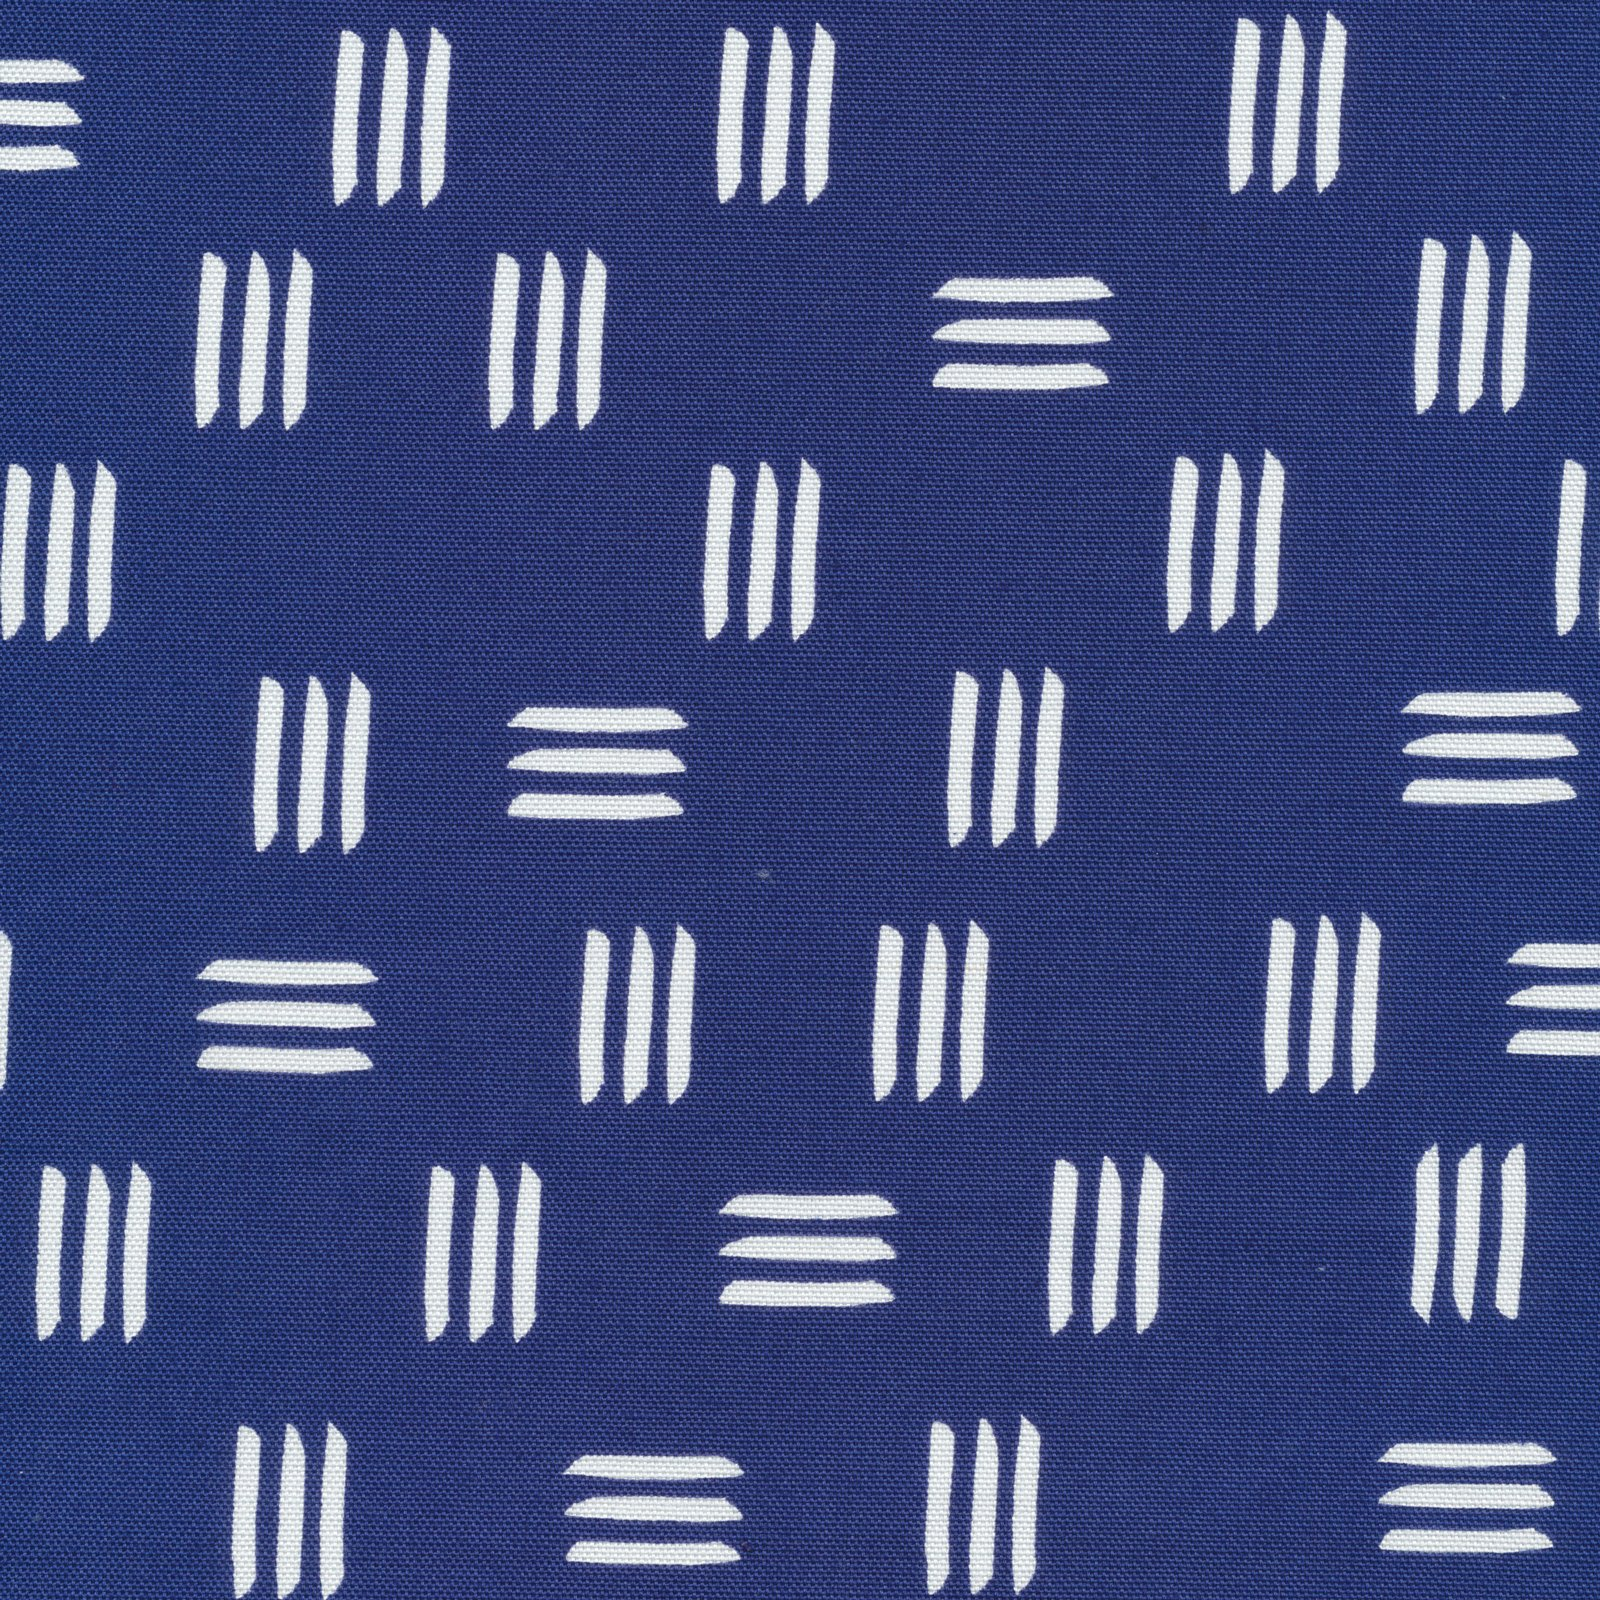 Cloud 9 Canvas - Lines and Shapes Dashes in Dark Blue